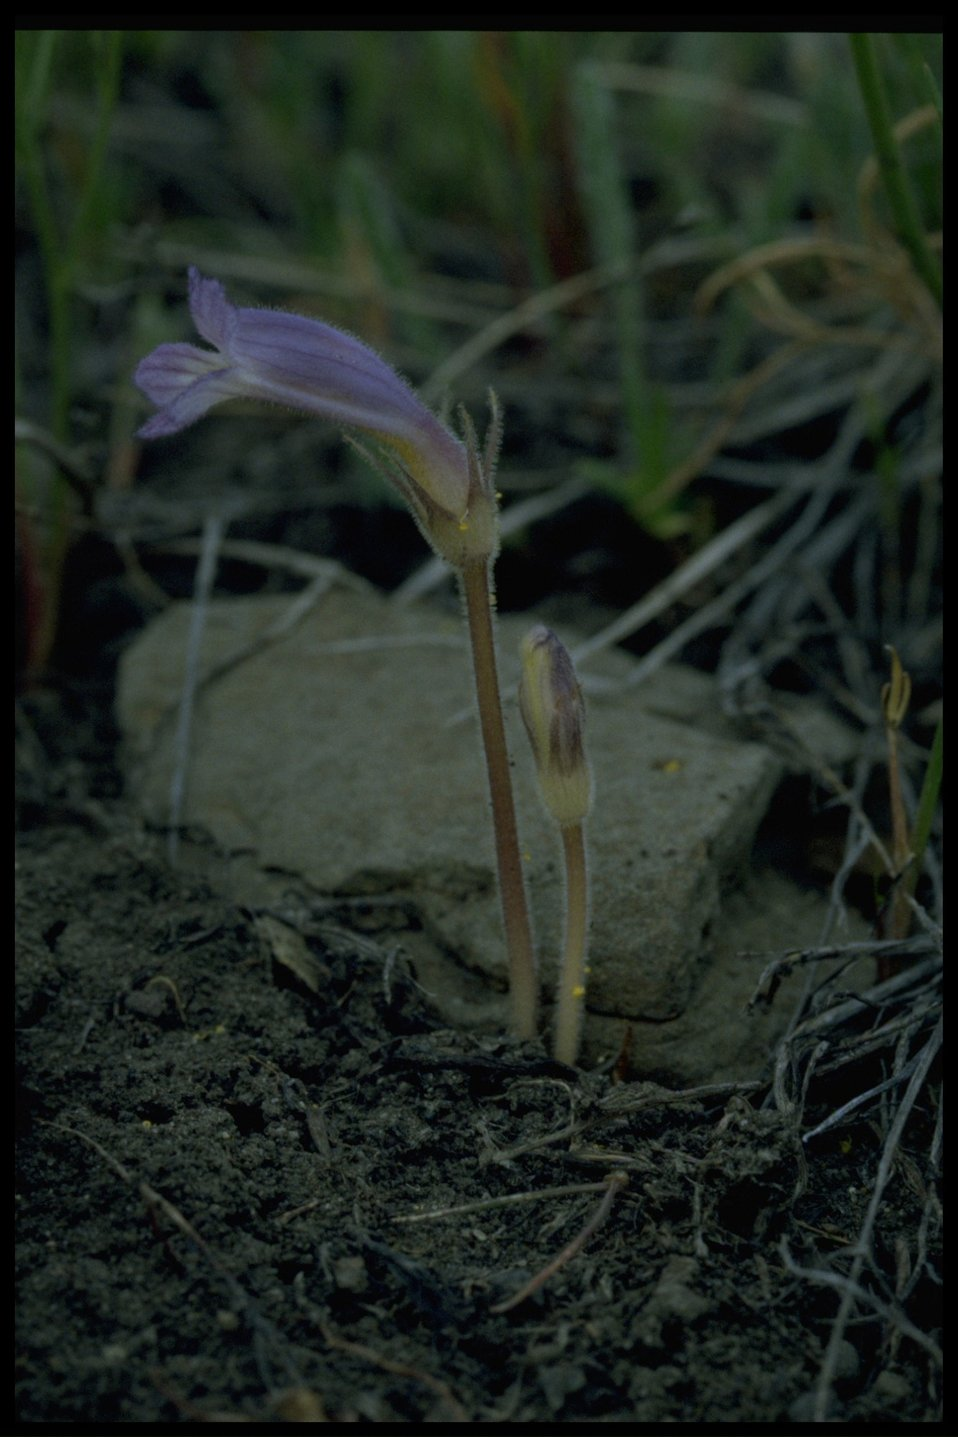 Farshot of oneflowered broomrape (Orobanche uniflora).